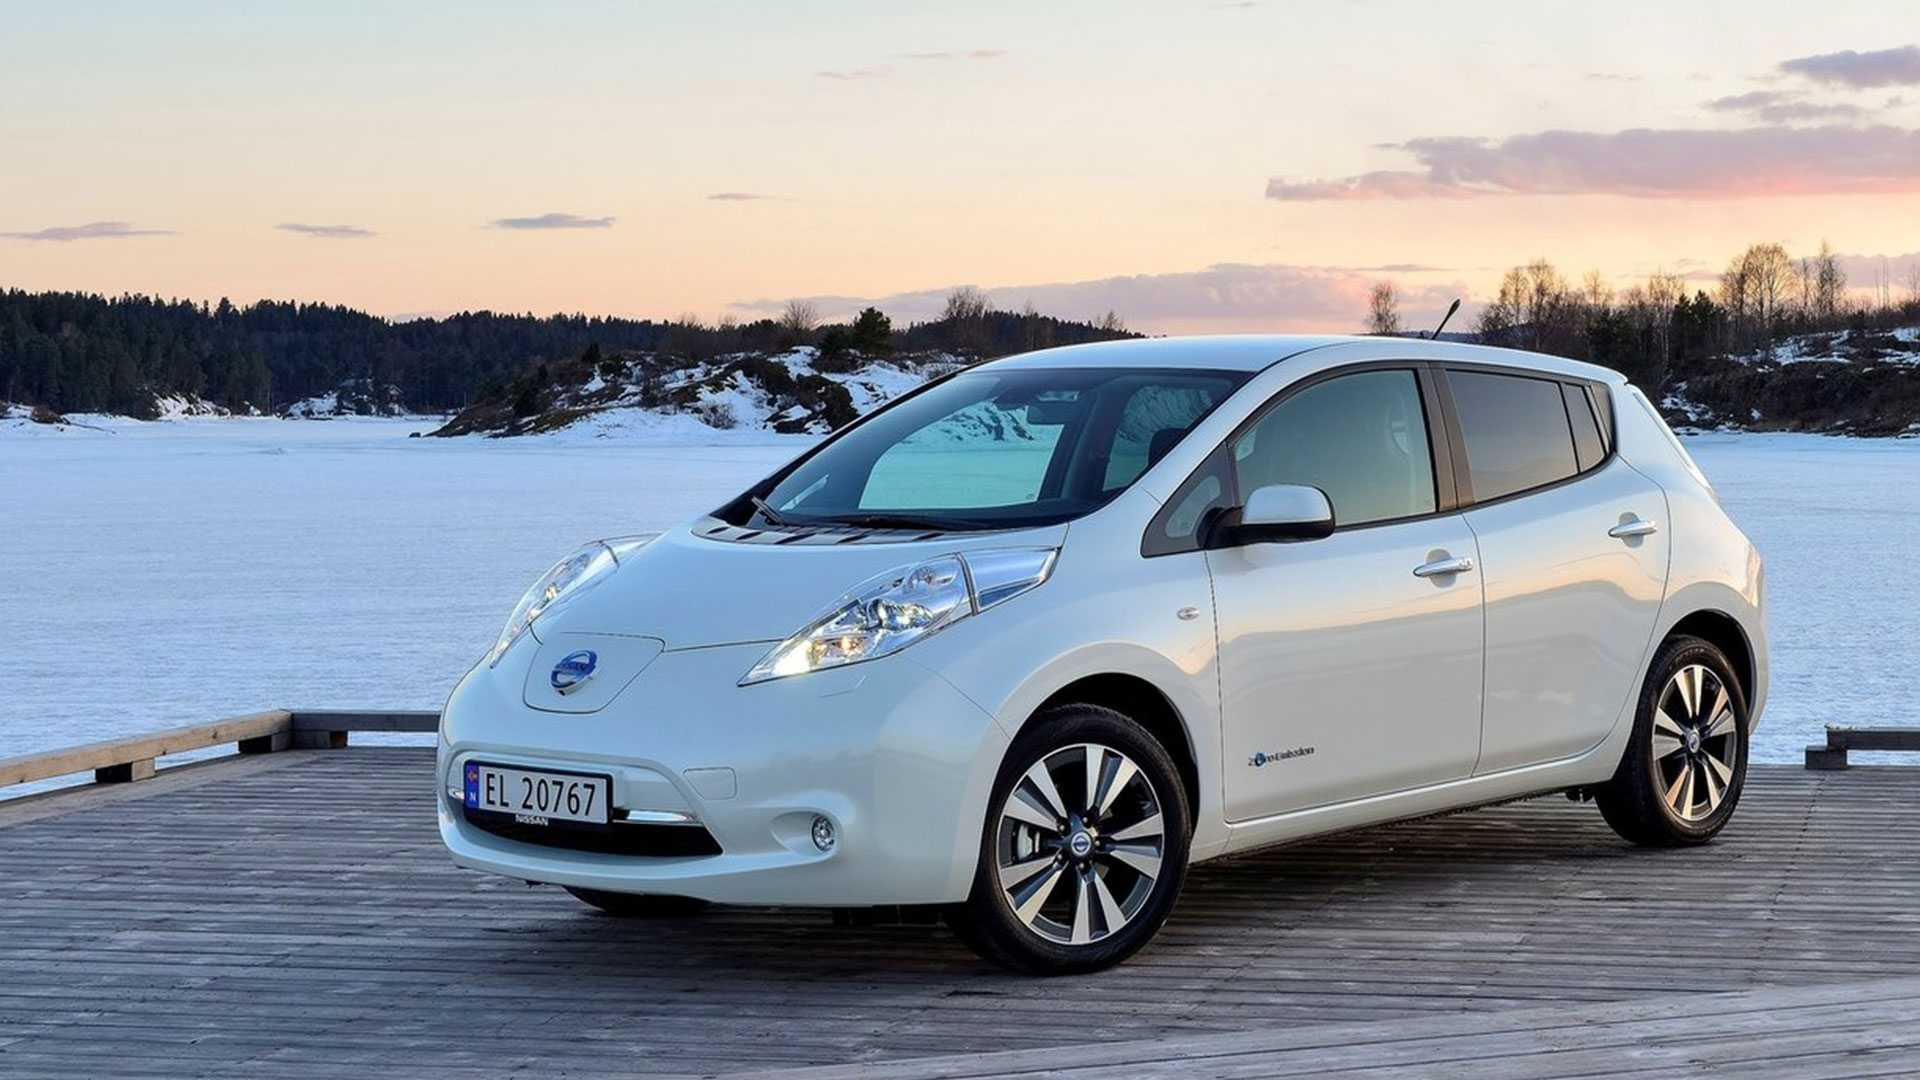 2016 Nissan Leaf Will Bring Battery Range to 110 Miles for Higher Trims